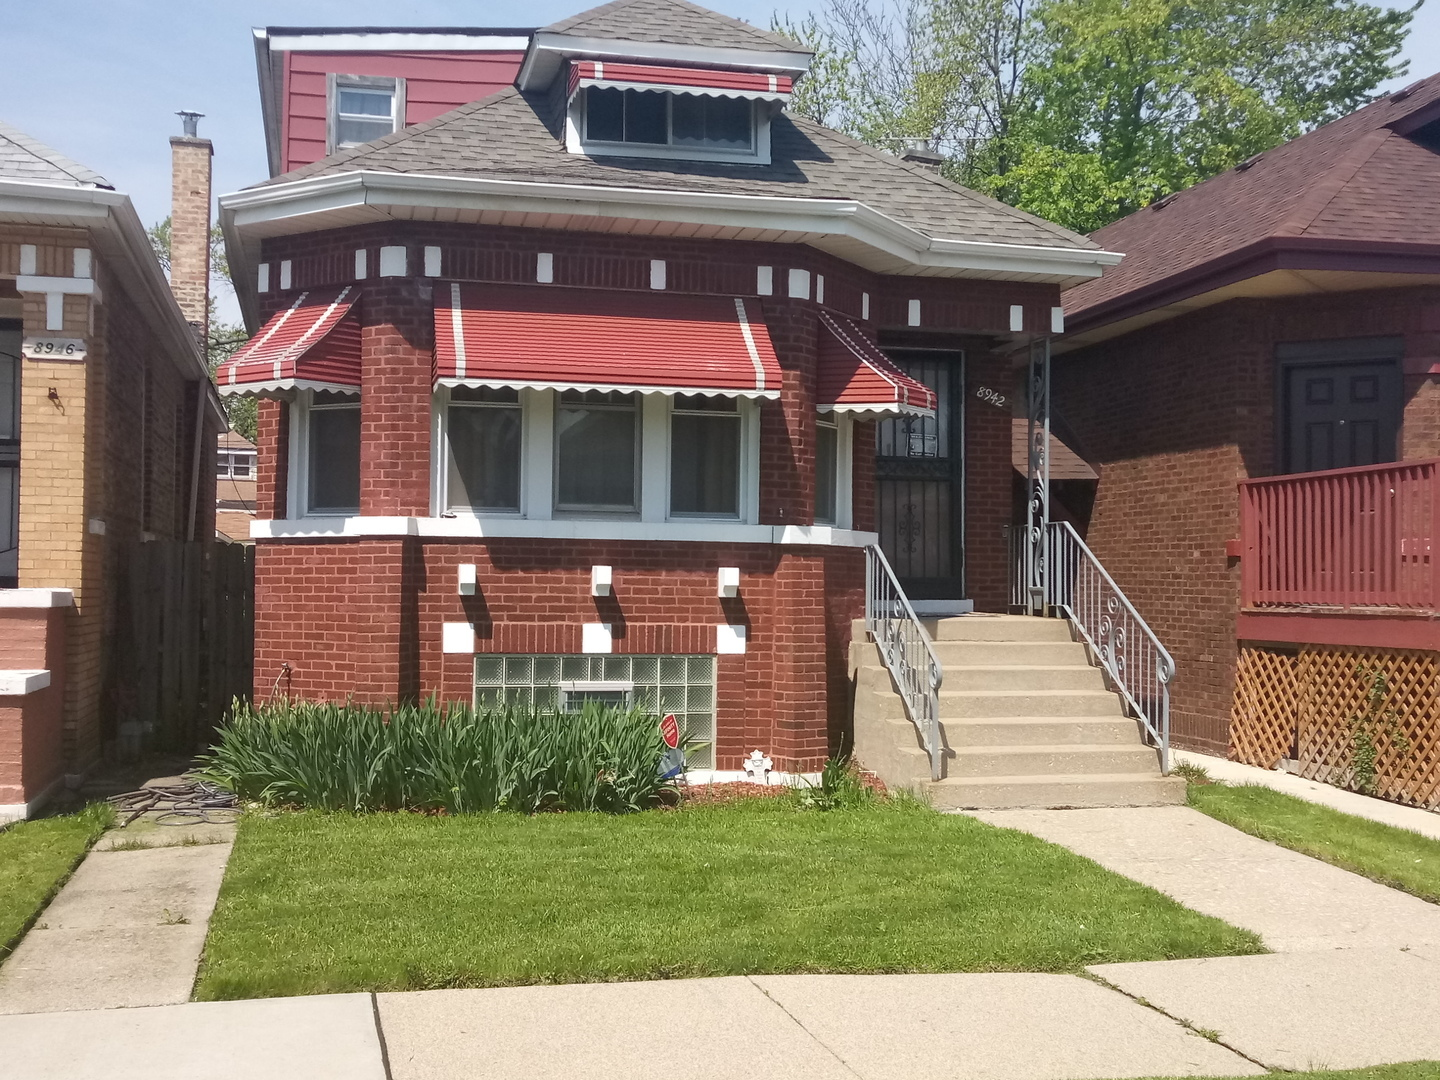 8942 Marshfield ,Chicago, Illinois 60620